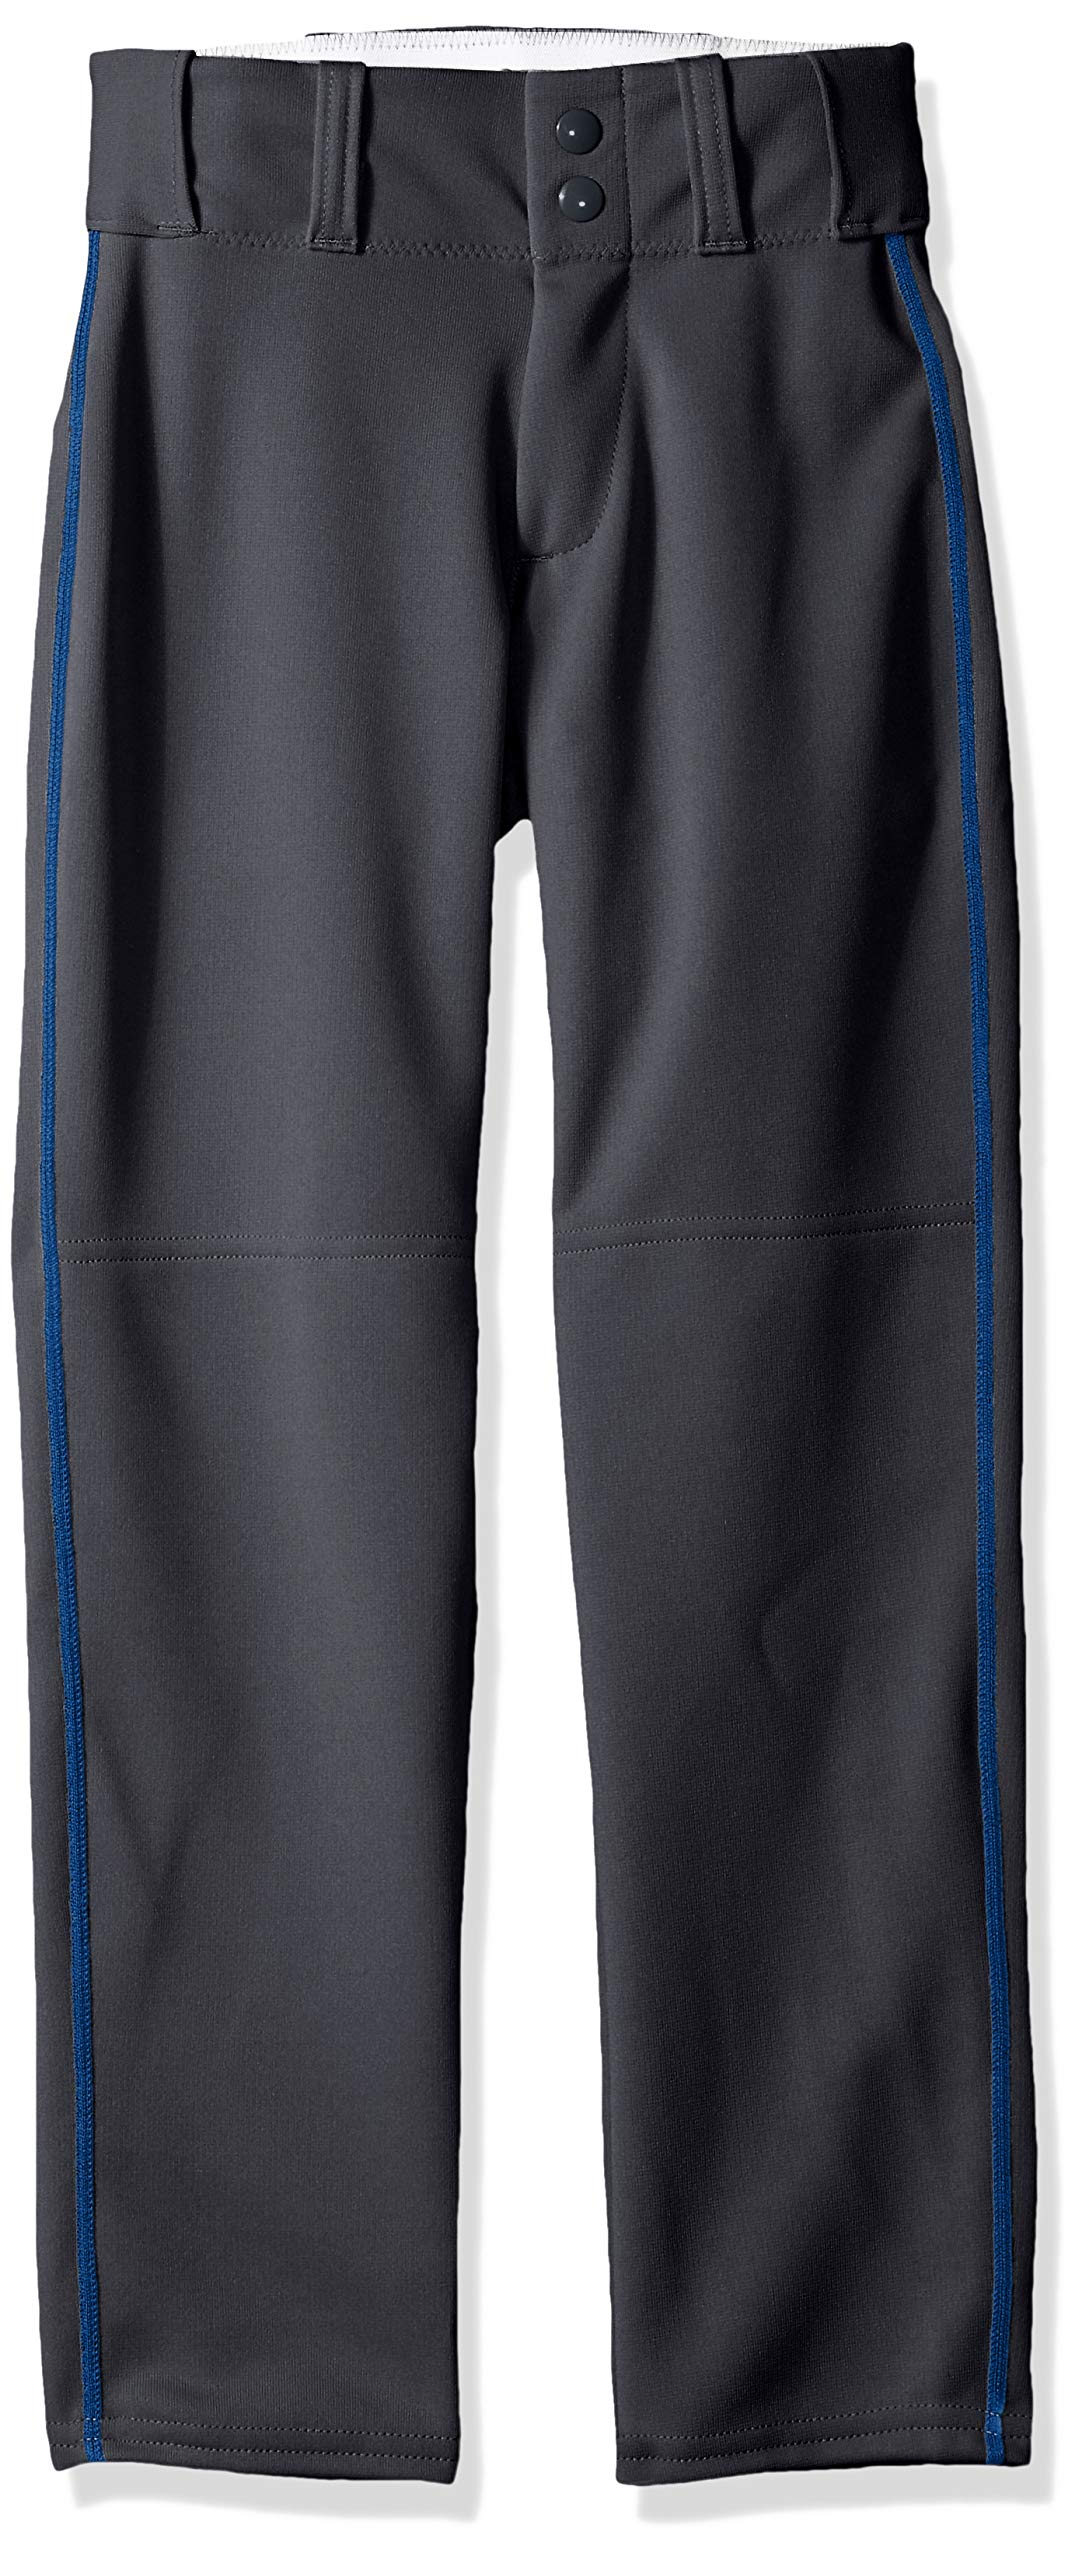 Alleson Ahtletic Boys Youth Baseball Pants with Braid, Charcoal/Royal, Medium by Alleson Athletic